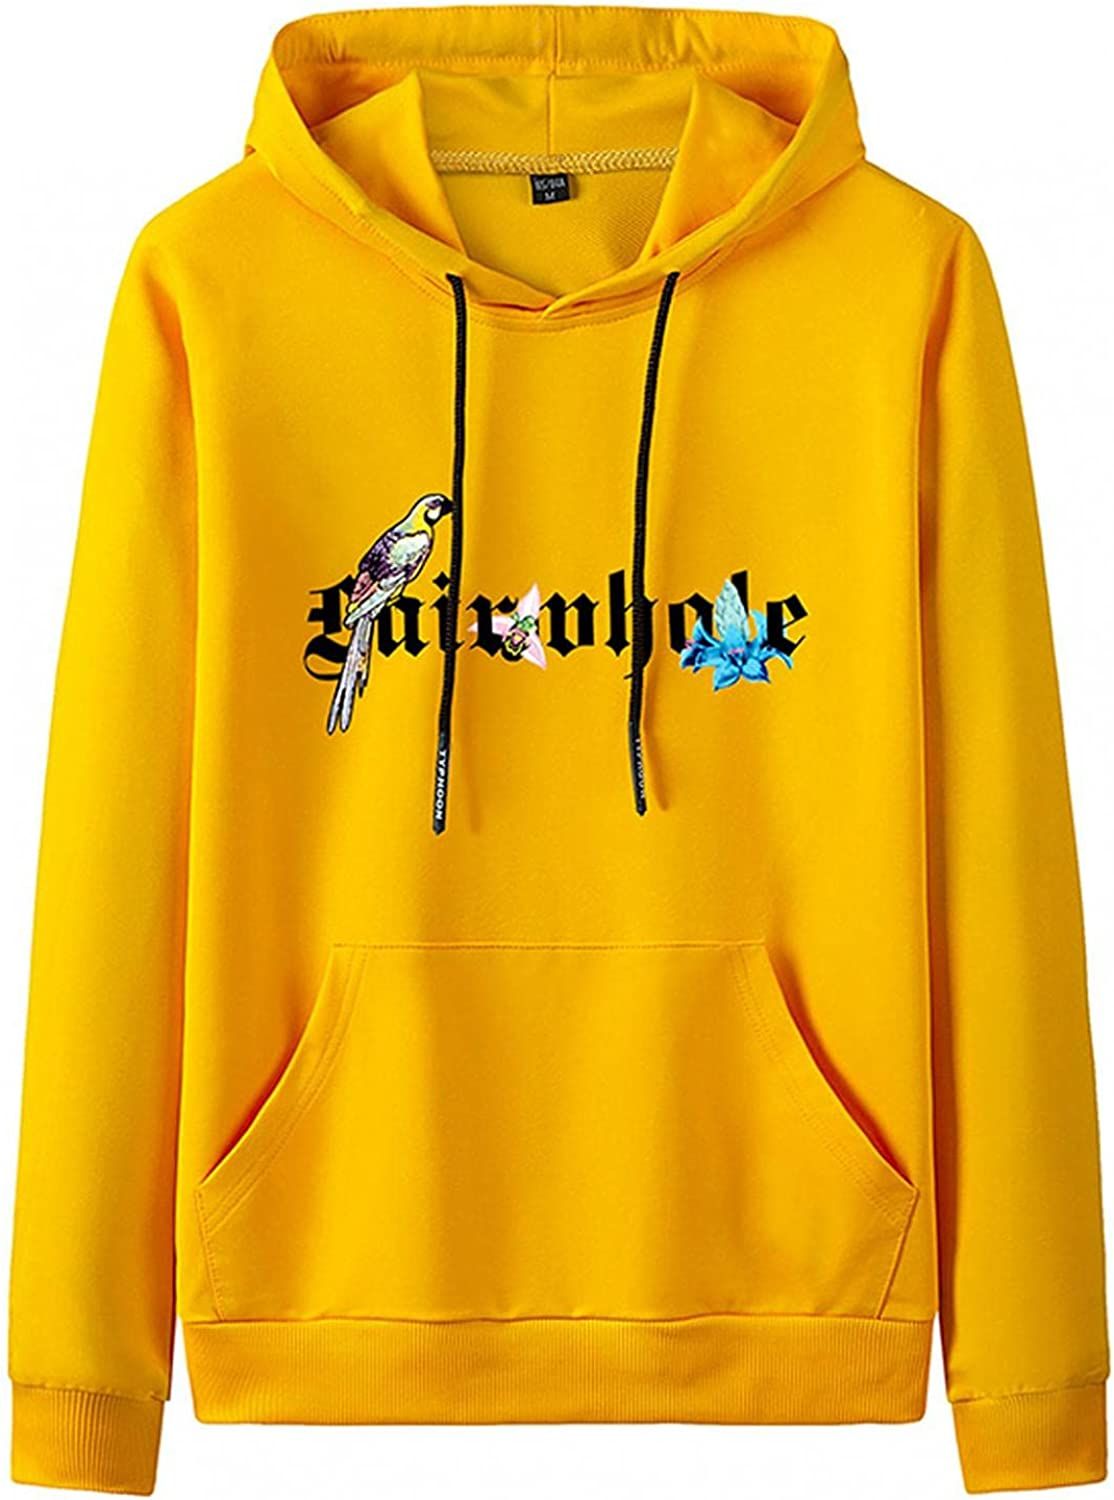 Men's Sweatshirts Lightweight Hooded 2021 Pullover Hoodies Casual Straight Solid Color Novelty Clothing